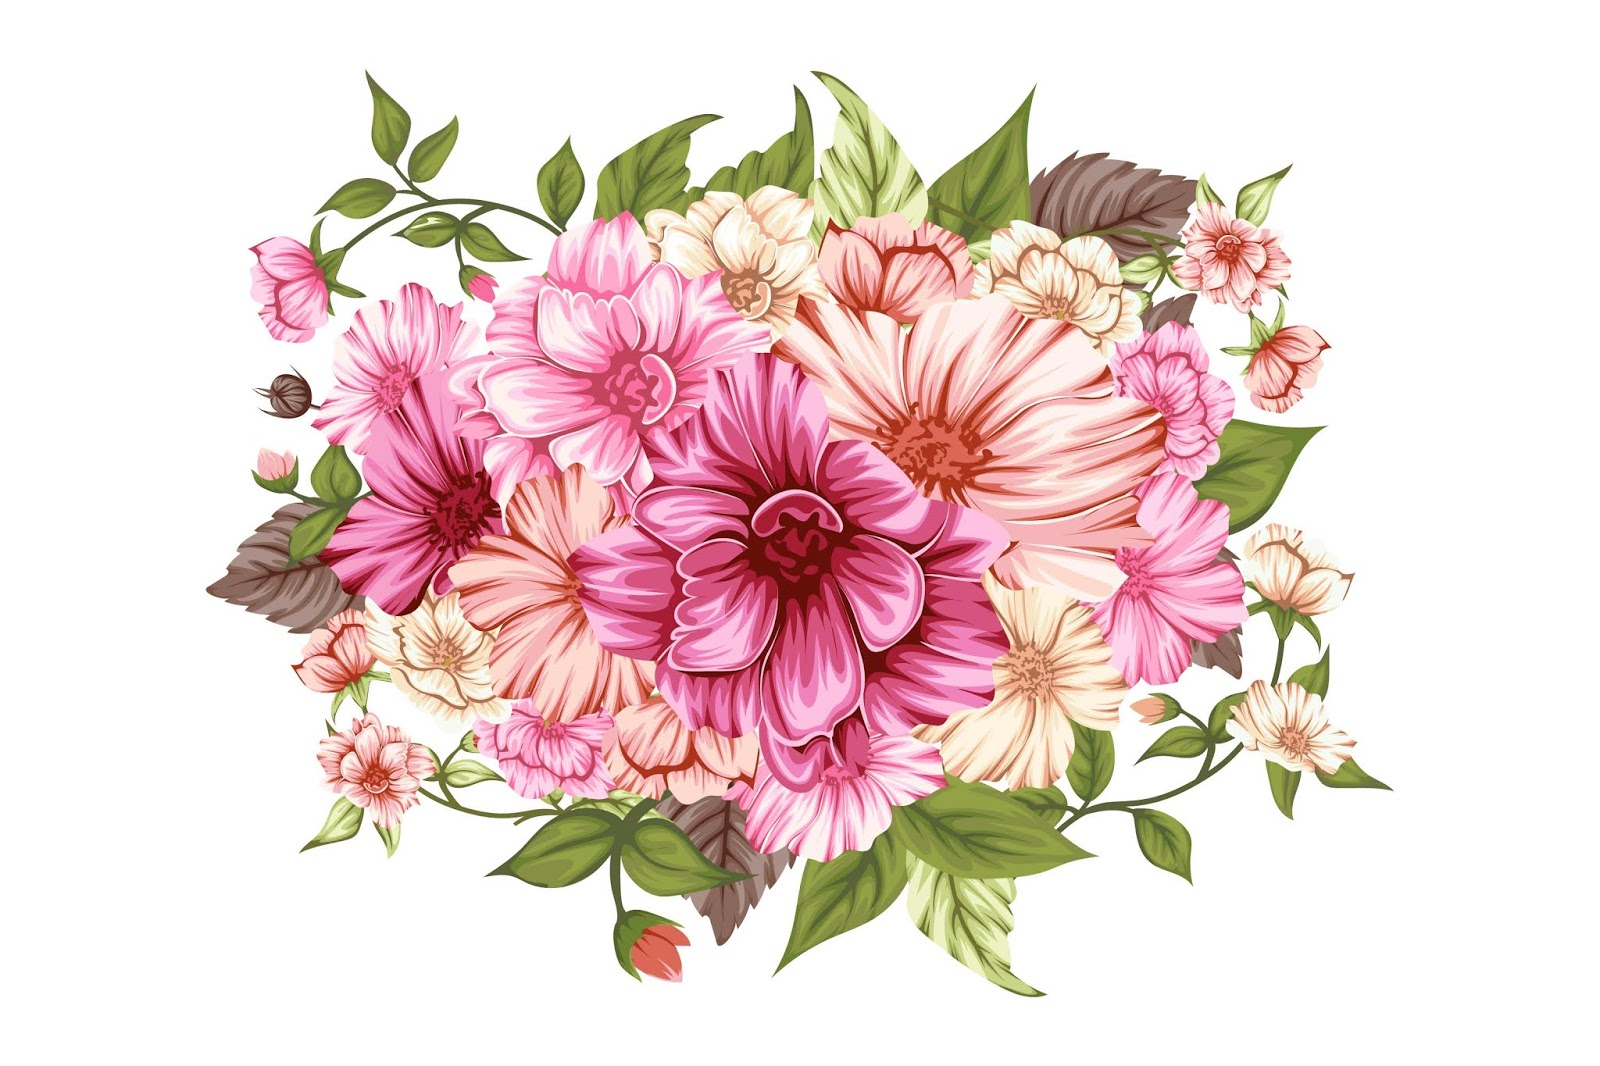 Beautiful Spring Bouquet Of Flowers Free Download Vector CDR, AI, EPS and PNG Formats